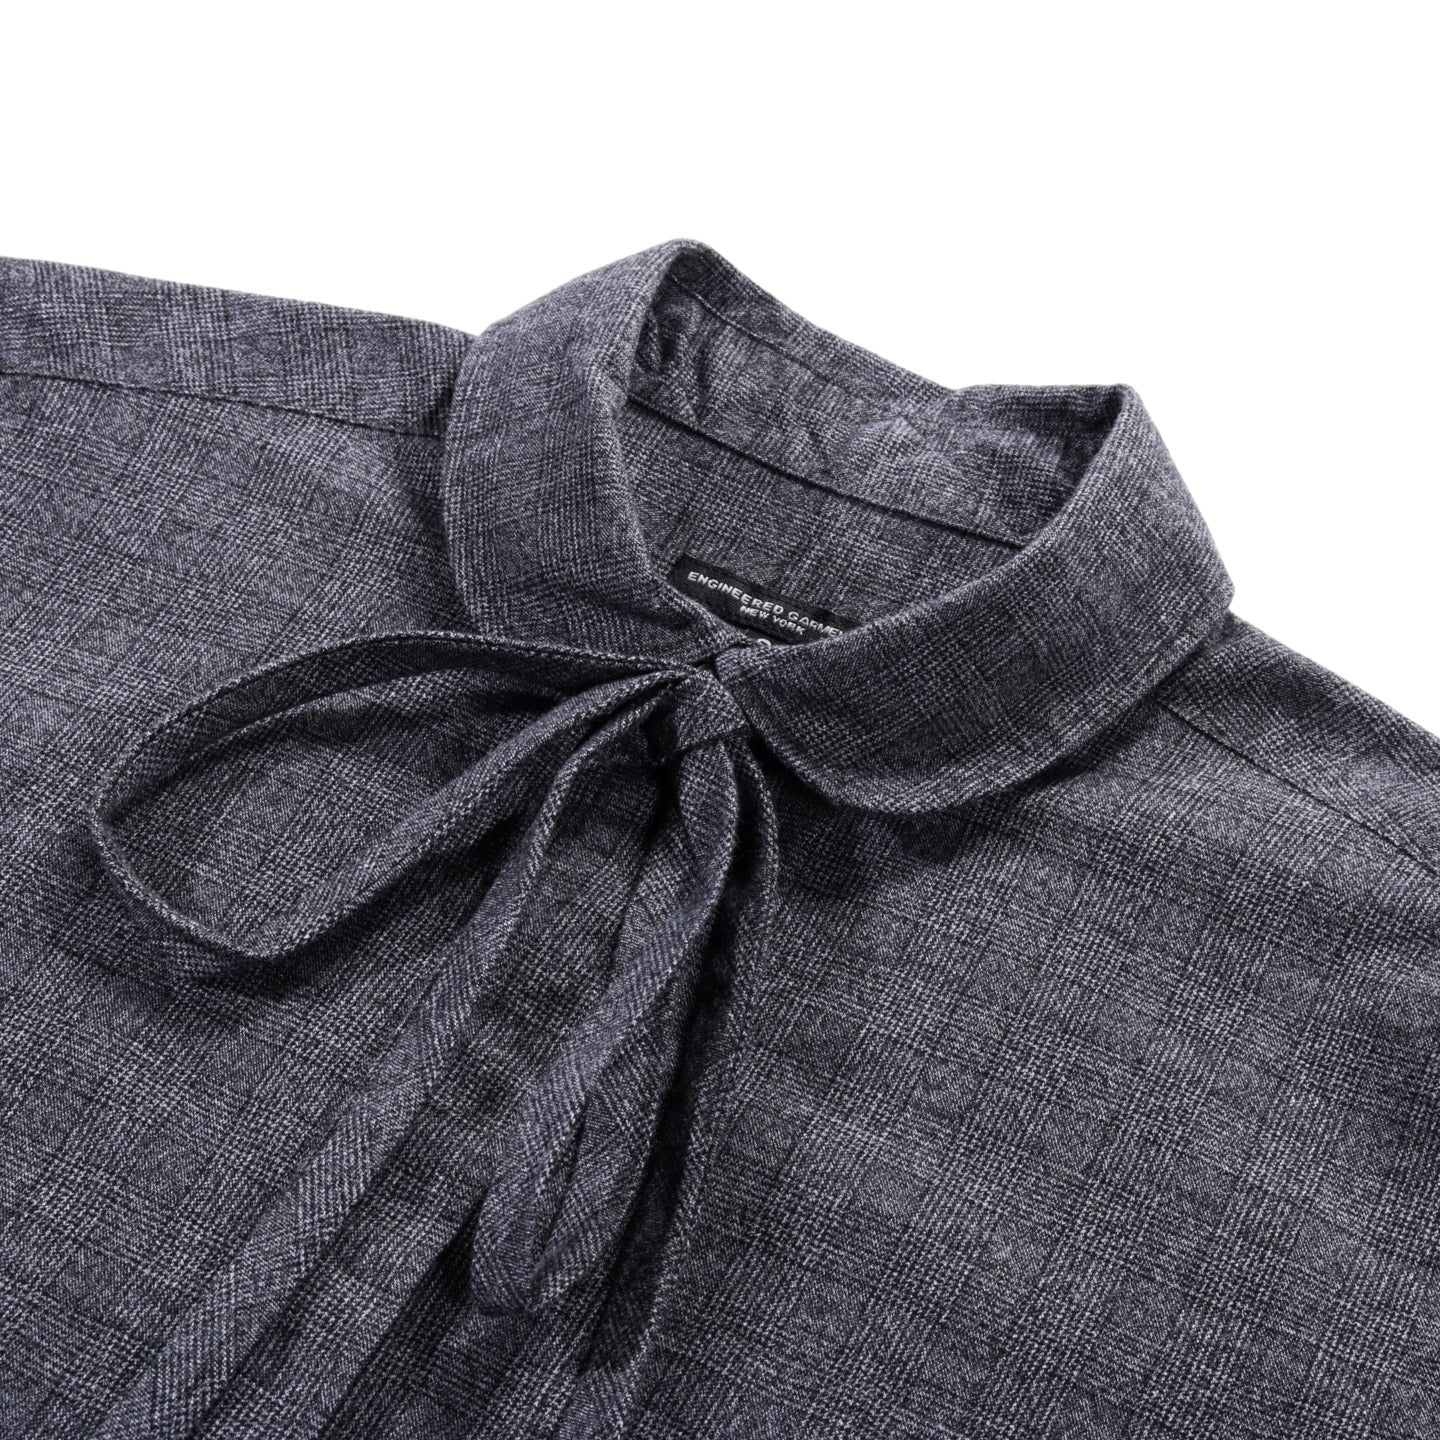 ENGINEERED GARMENTS ROUNDED COLLAR SHIRT GREY COTTON GLEN PLAID